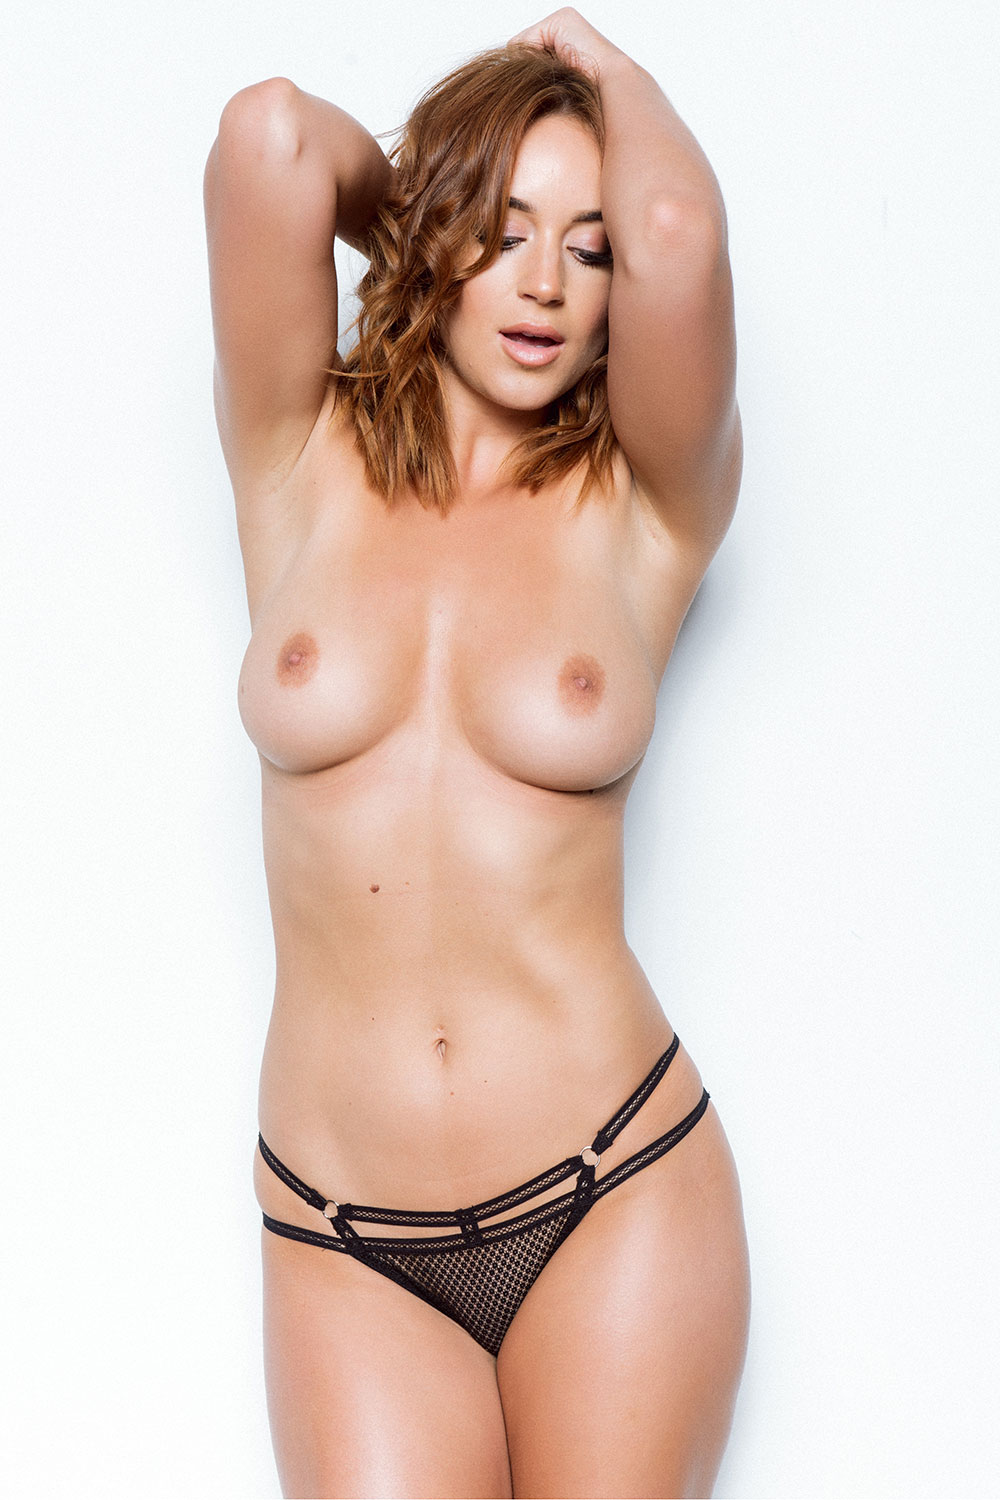 Topless Photos Of Rosie J...